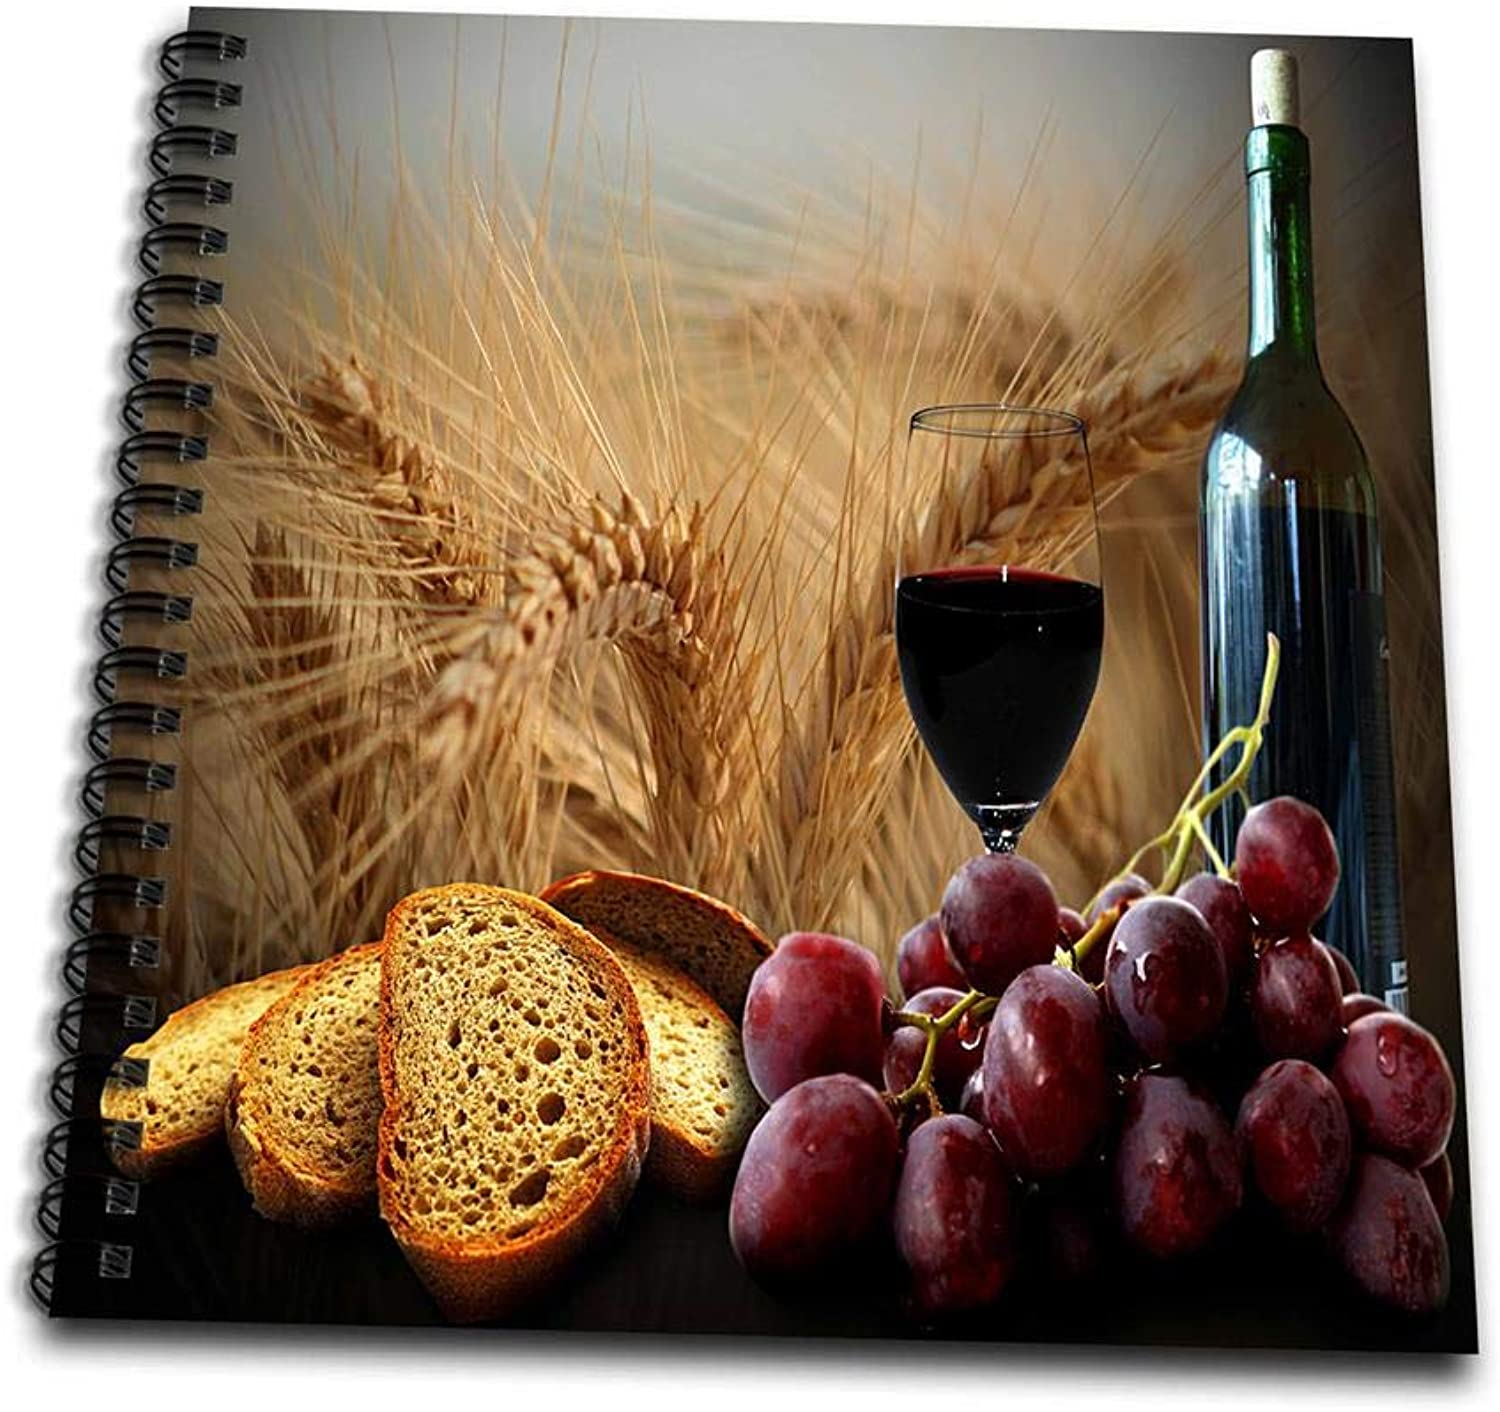 3dpink db_14294_1 Wine Bread Grapes Drawing Book, 8 by 8